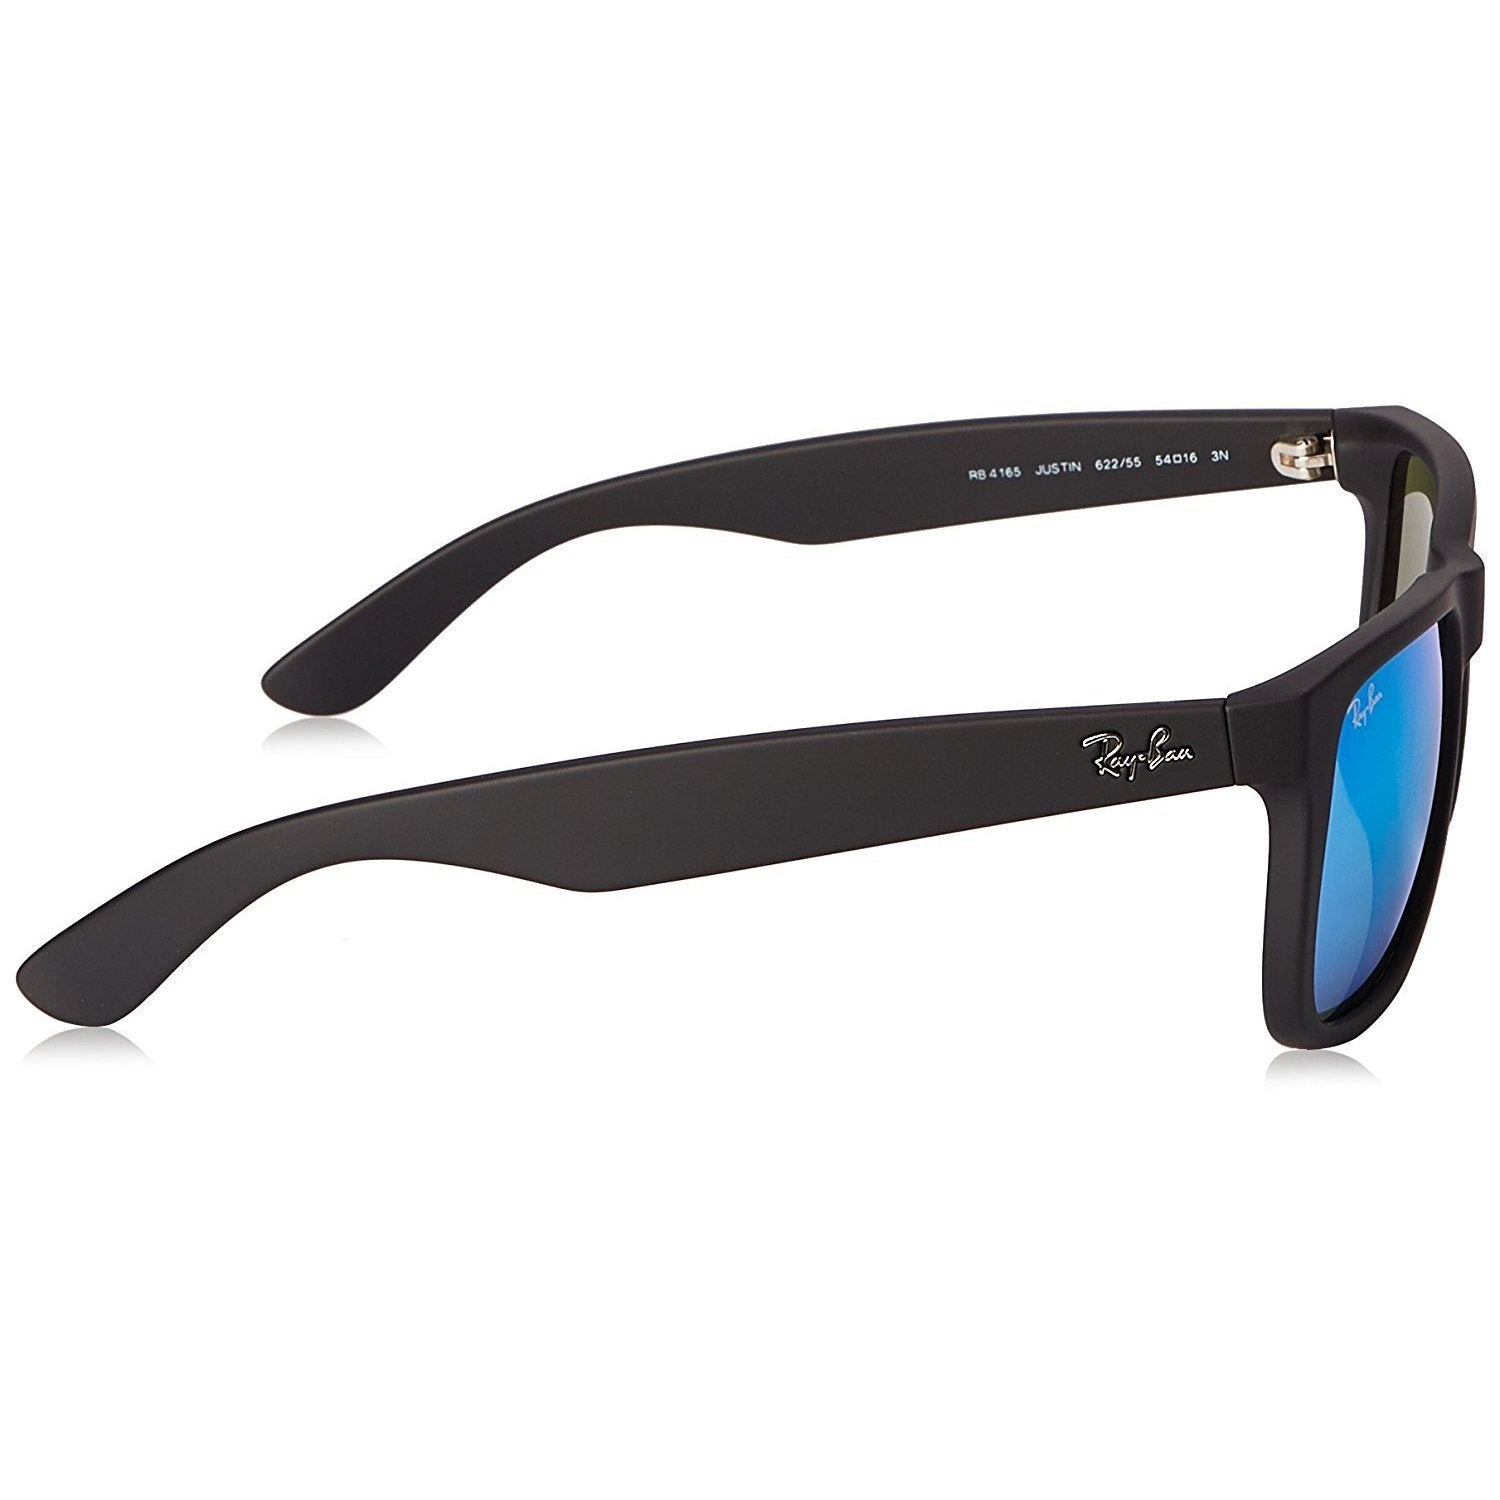 a2a10415bc0 Shop Ray-Ban Justin RB4165 622 55 Men s Black Frame Blue Mirror 55mm Lens  Sunglasses - Free Shipping Today - Overstock - 15299131